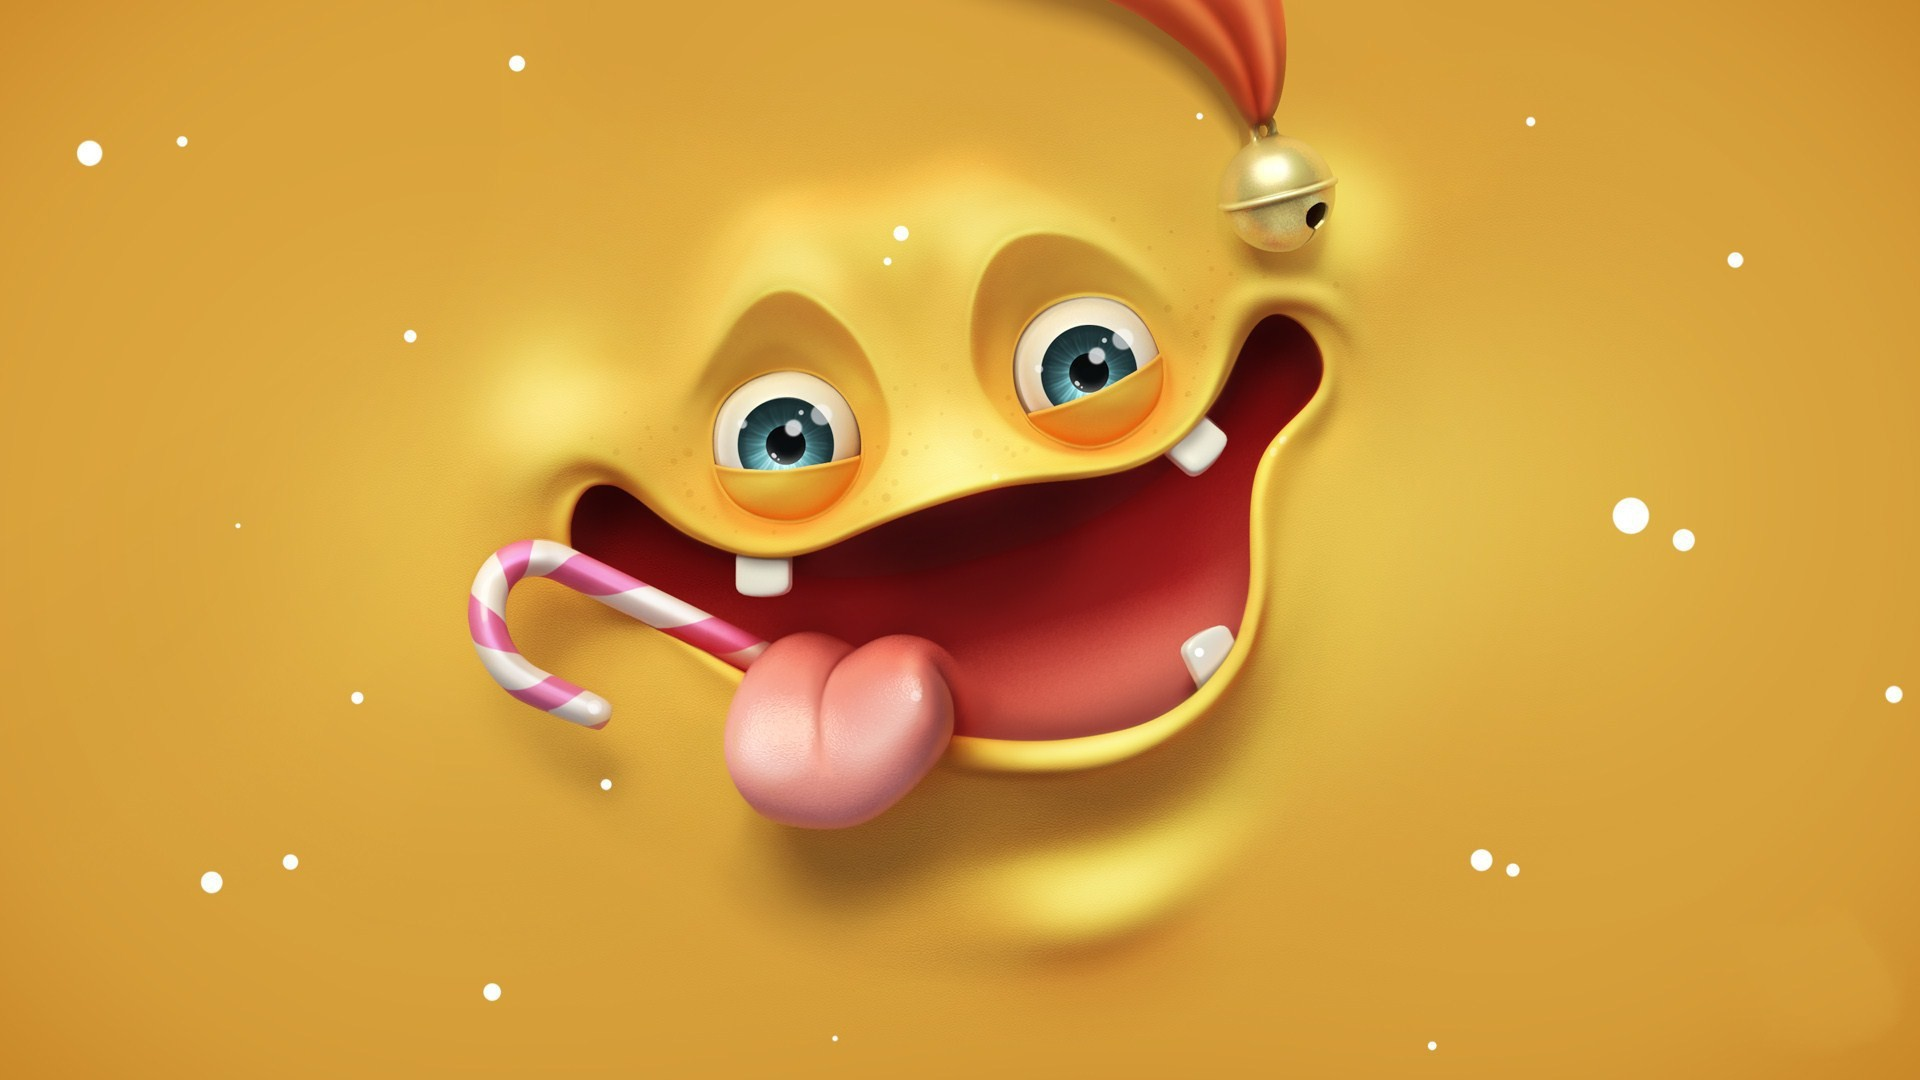 65 Funny Wallpaper Pictures Free On Wallpapersafari